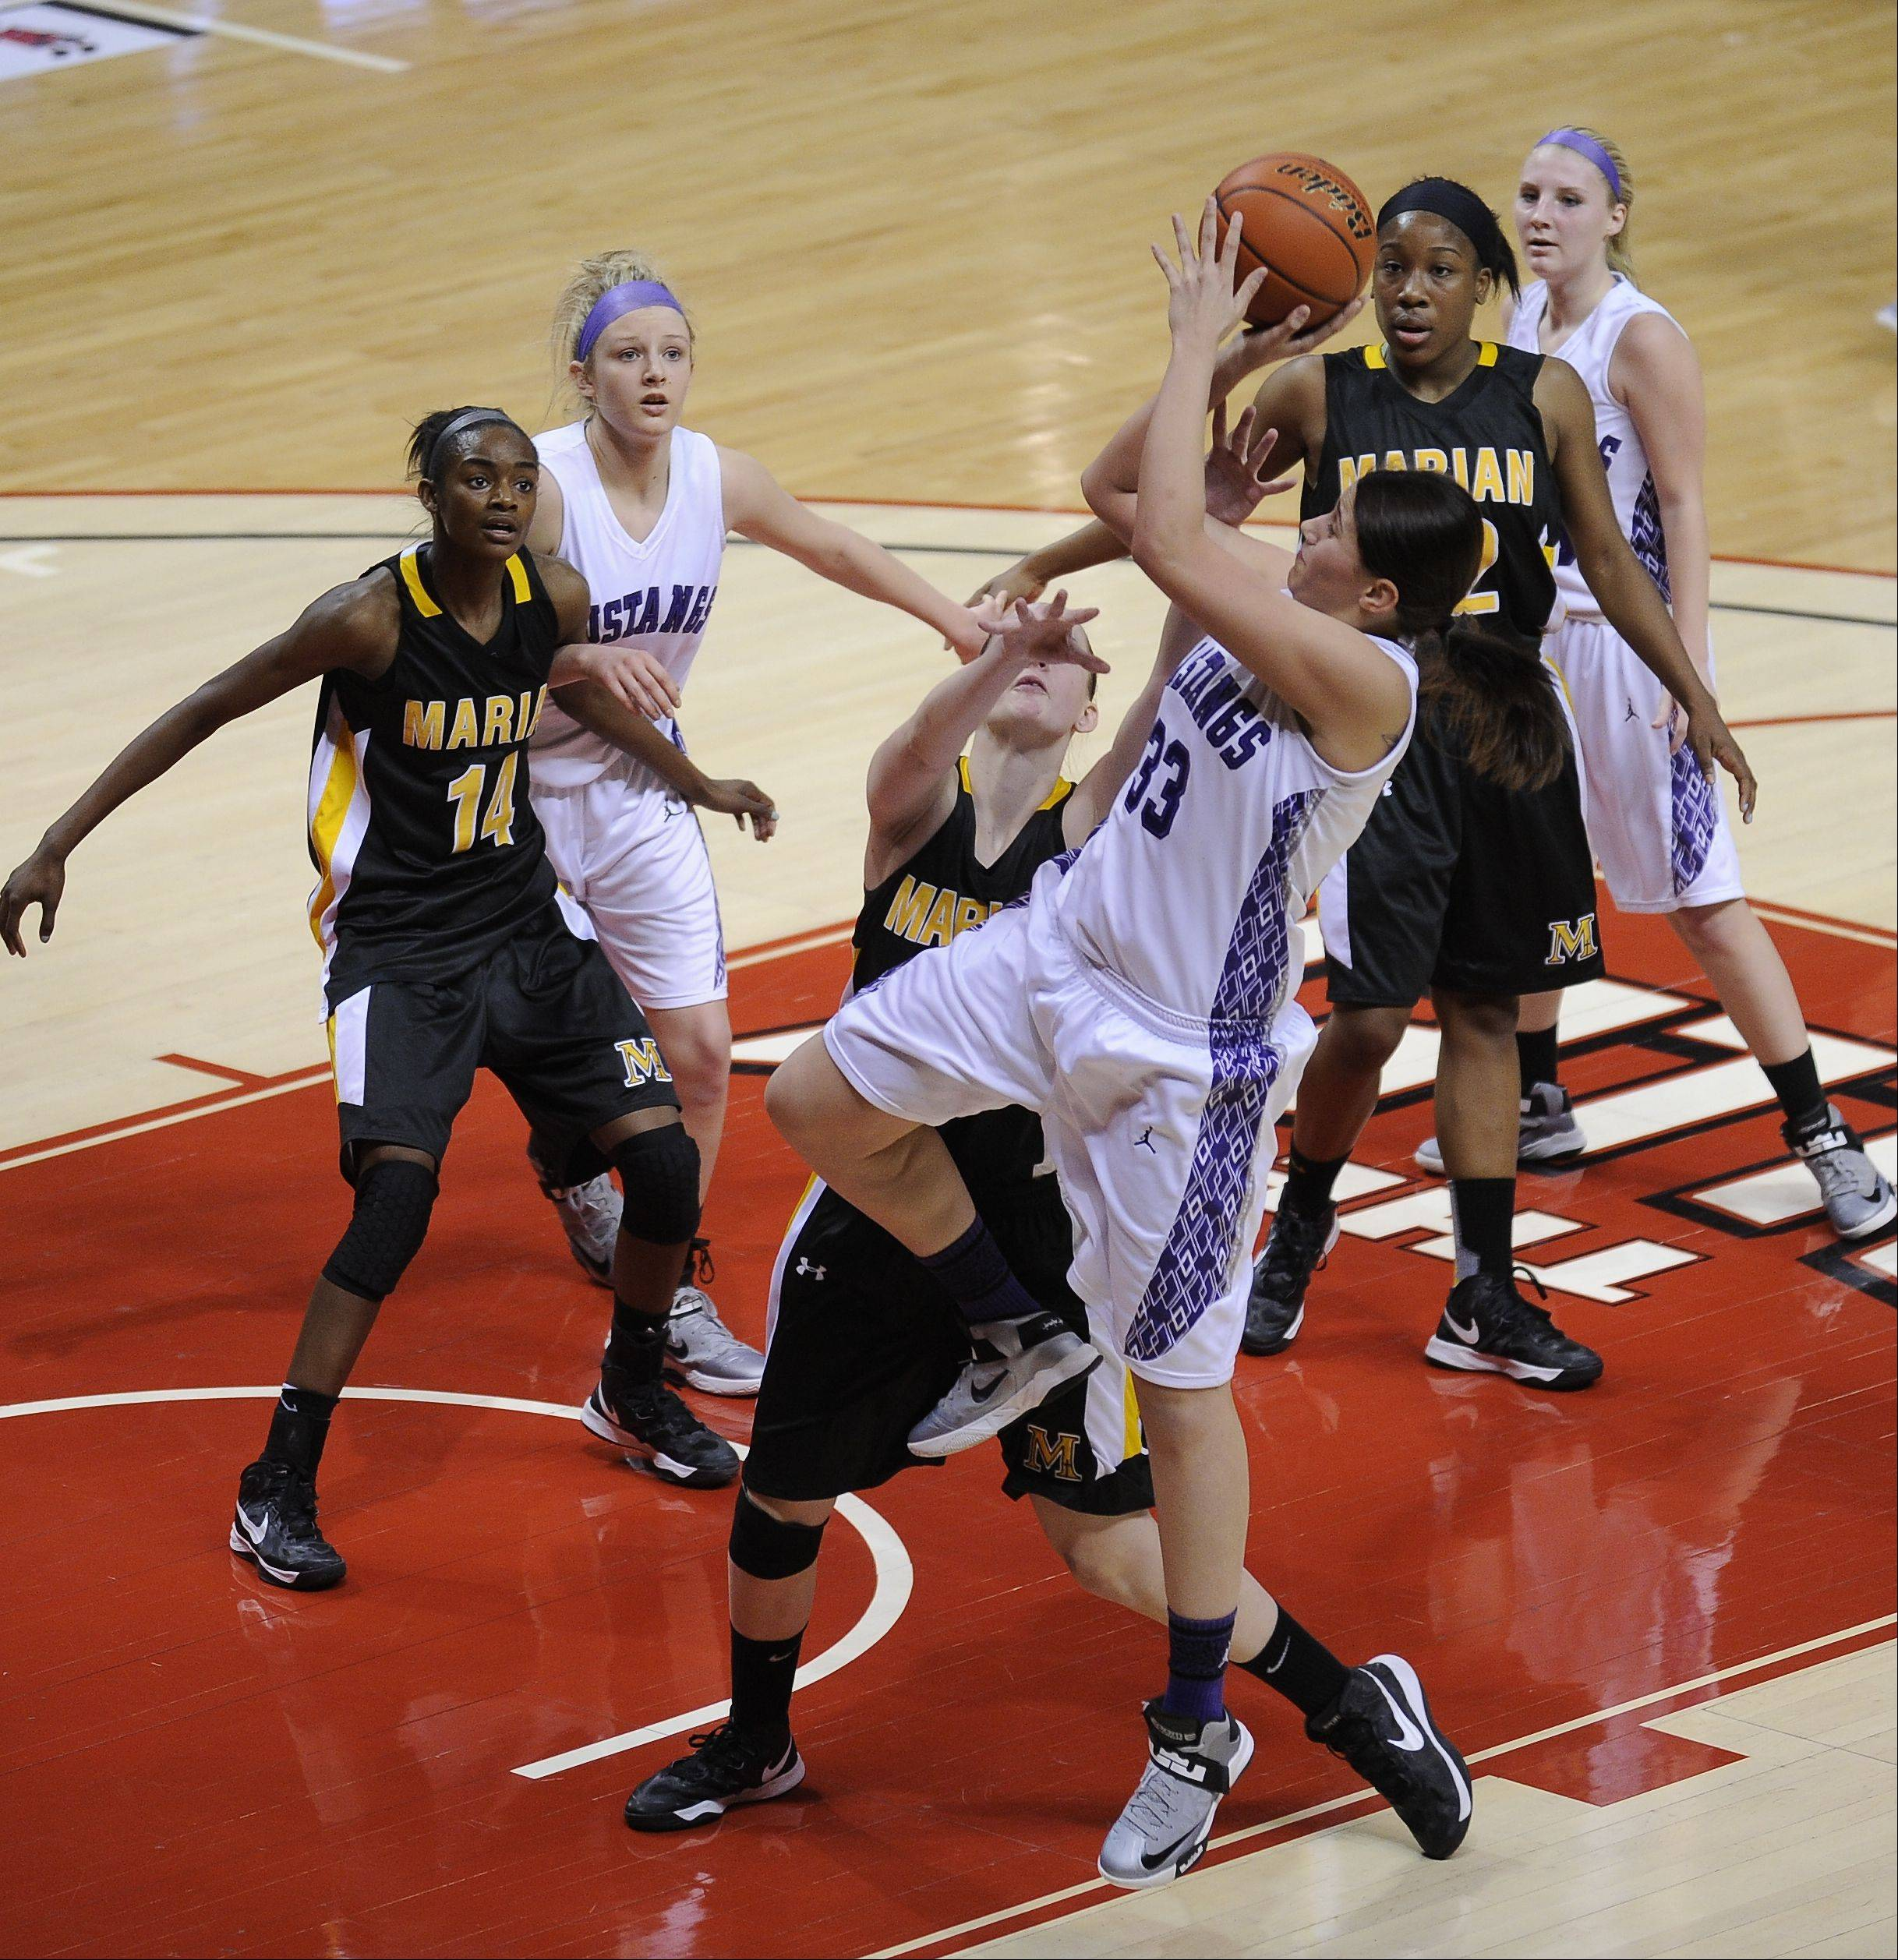 Images from the IHSA Class 4A state girls basketball championship game Rolling Meadows vs Chicago Heights (Marian) on Saturday, March 2 at the Redbird Arena in Normal.